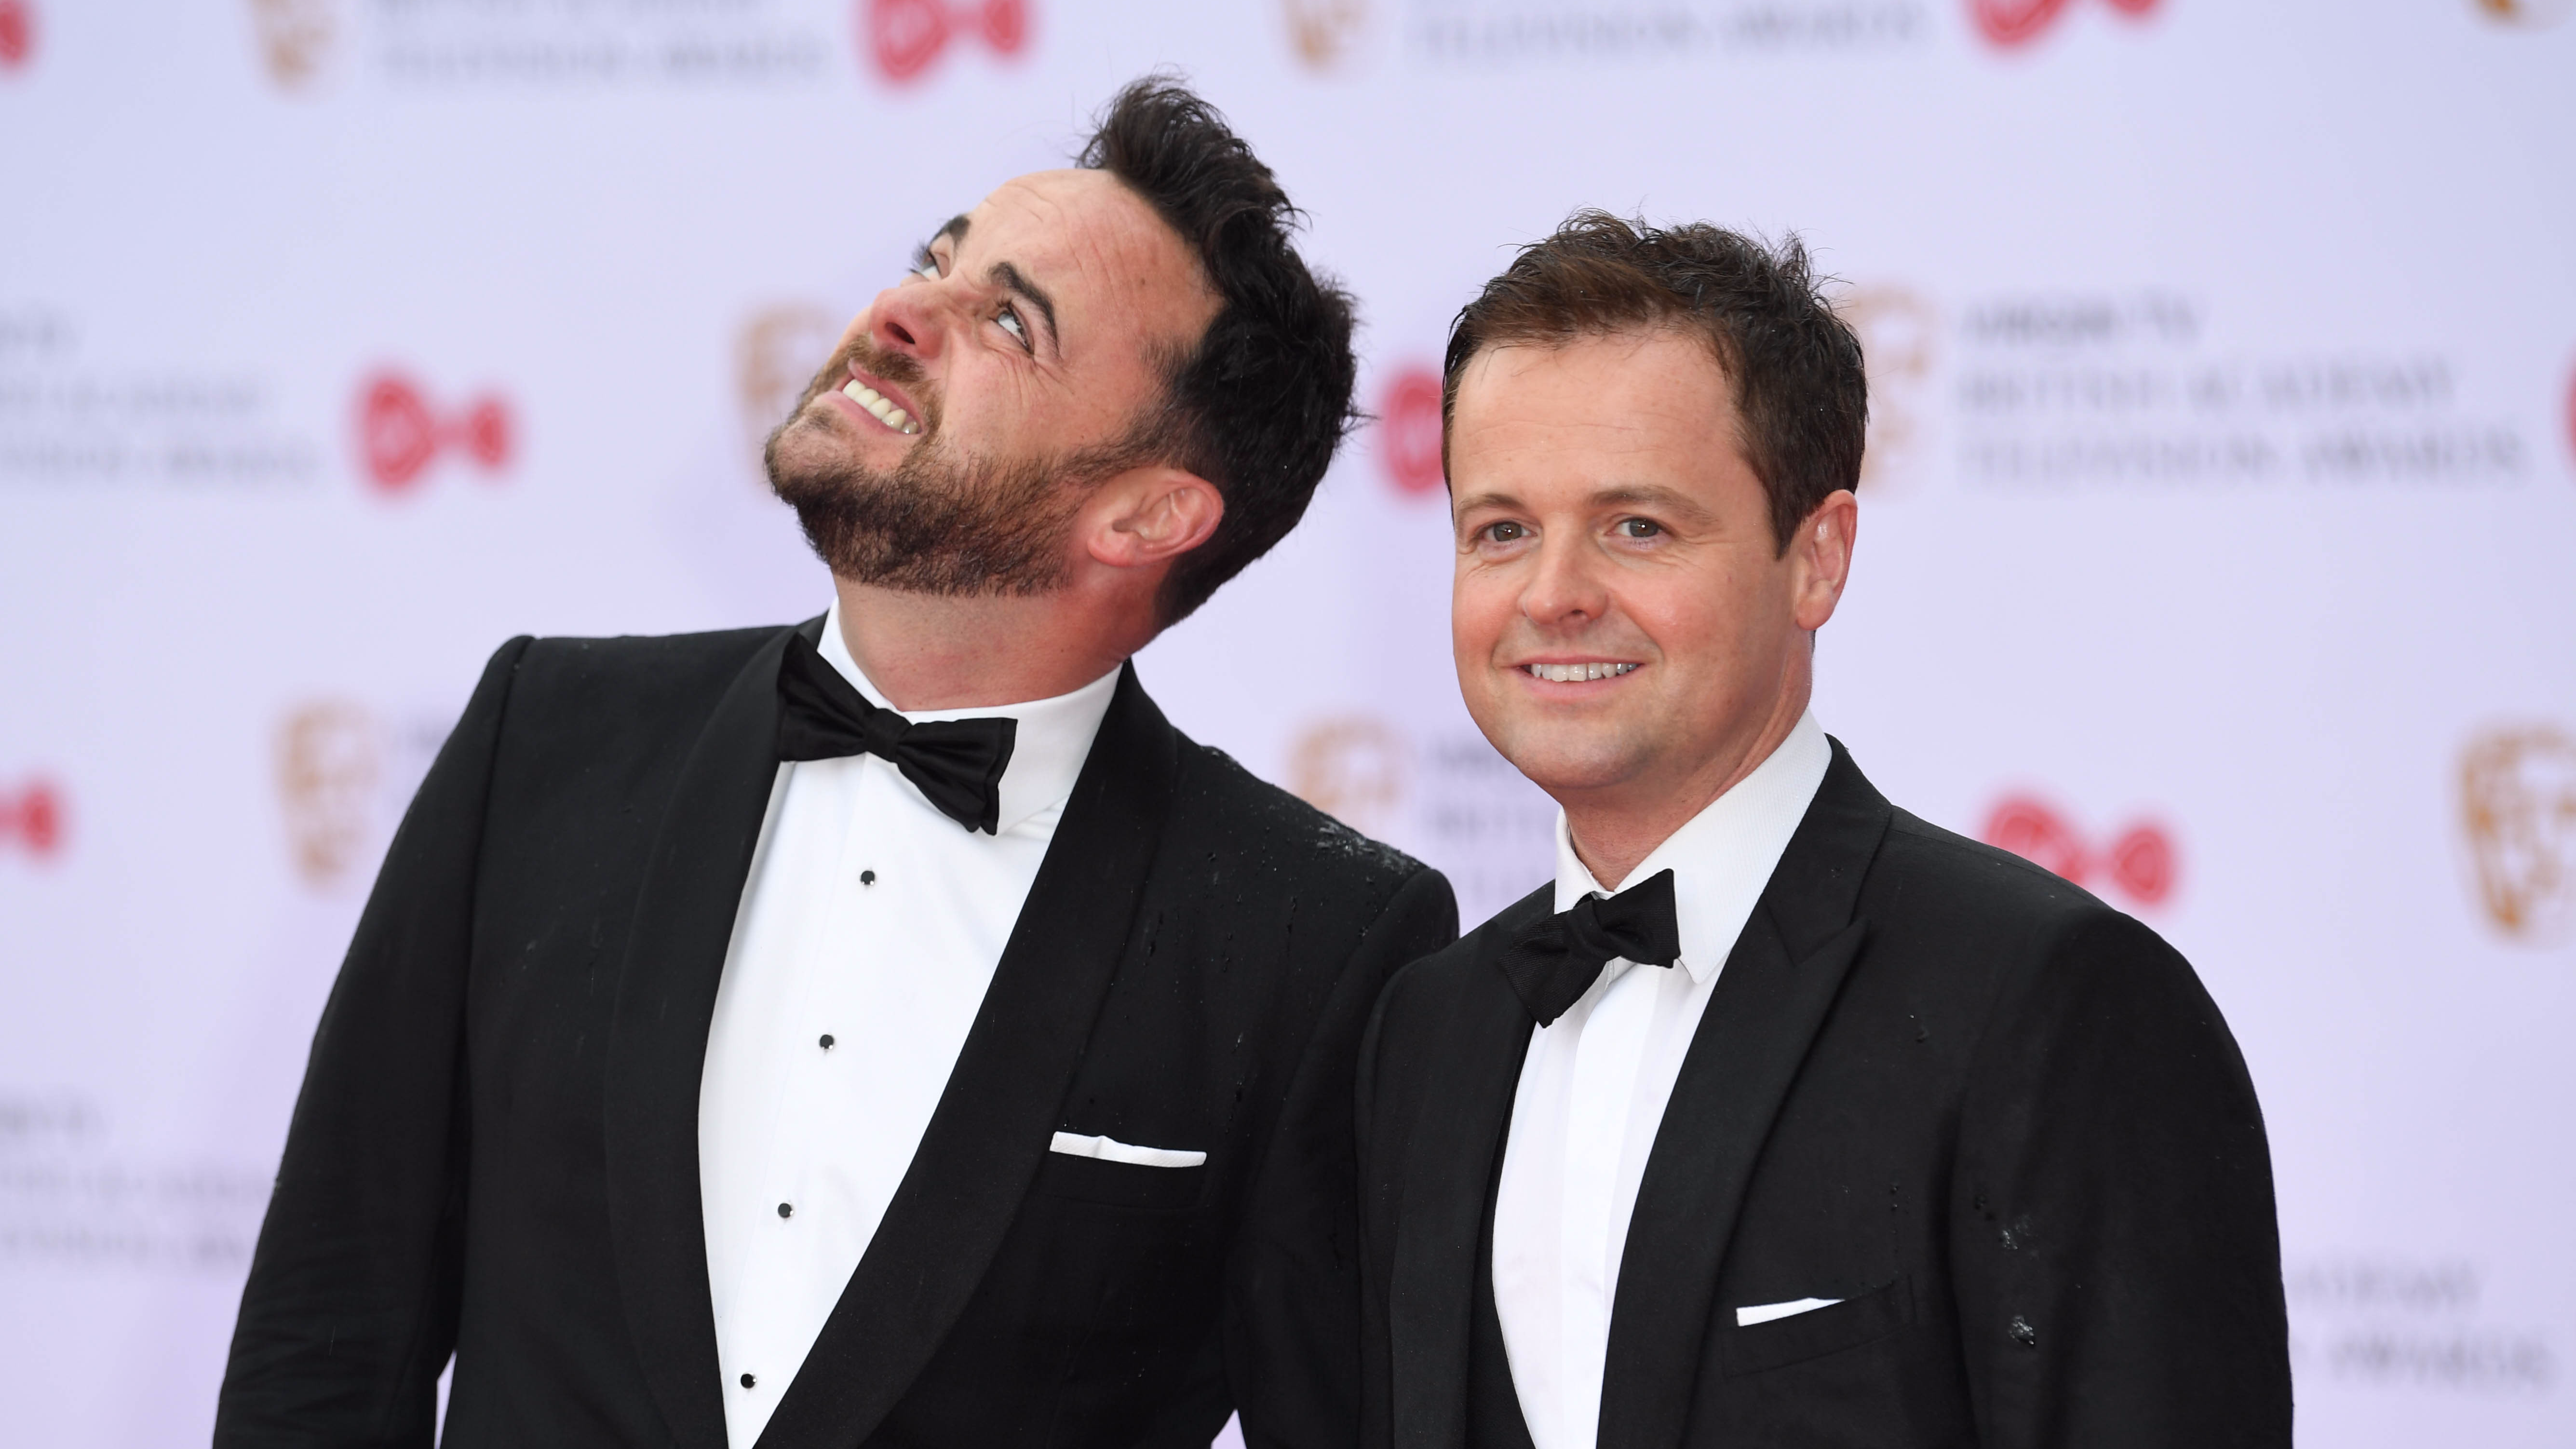 Ant And Dec Have Had An Incredible Career, And They Deserve It Most